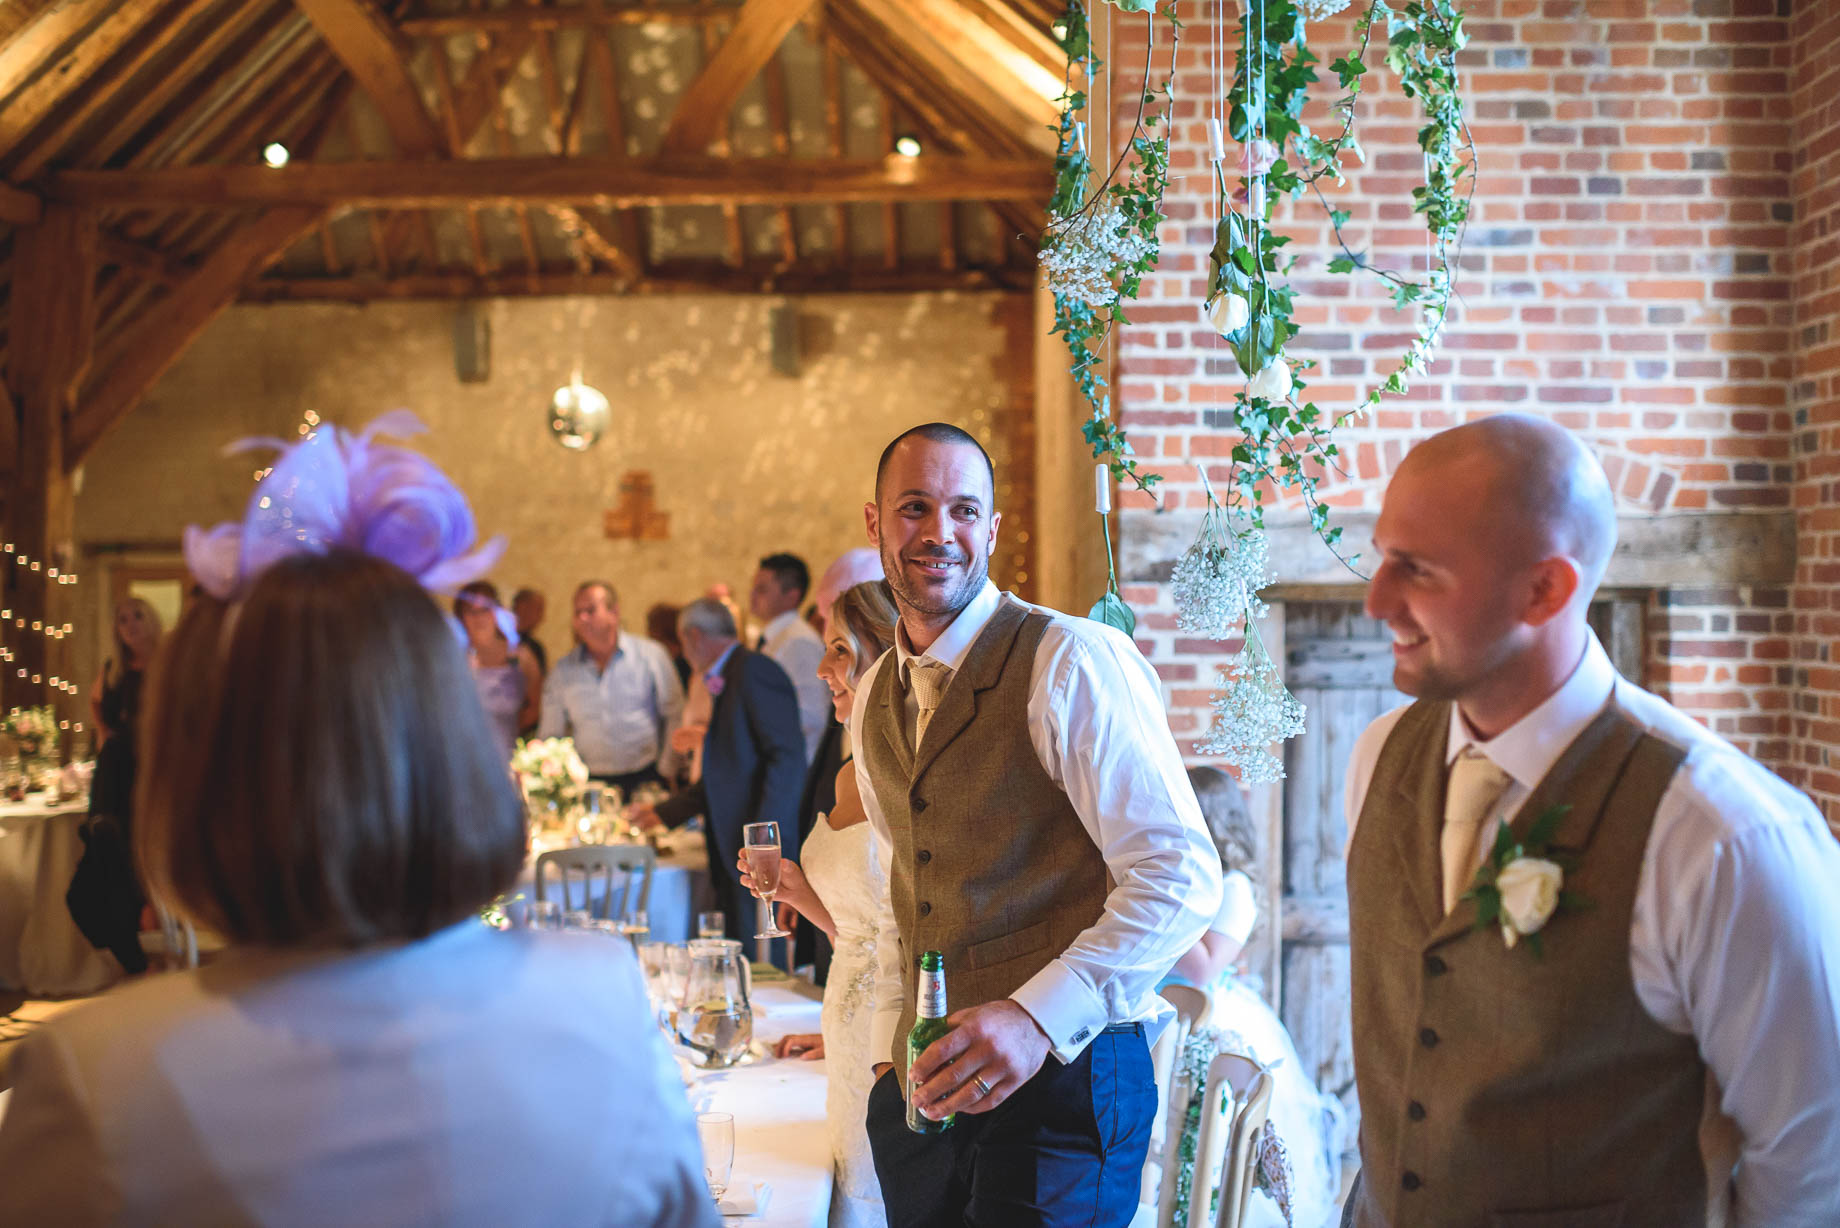 Bury Court Barn wedding photography - Guy Collier - Kate and Russ (157 of 187)